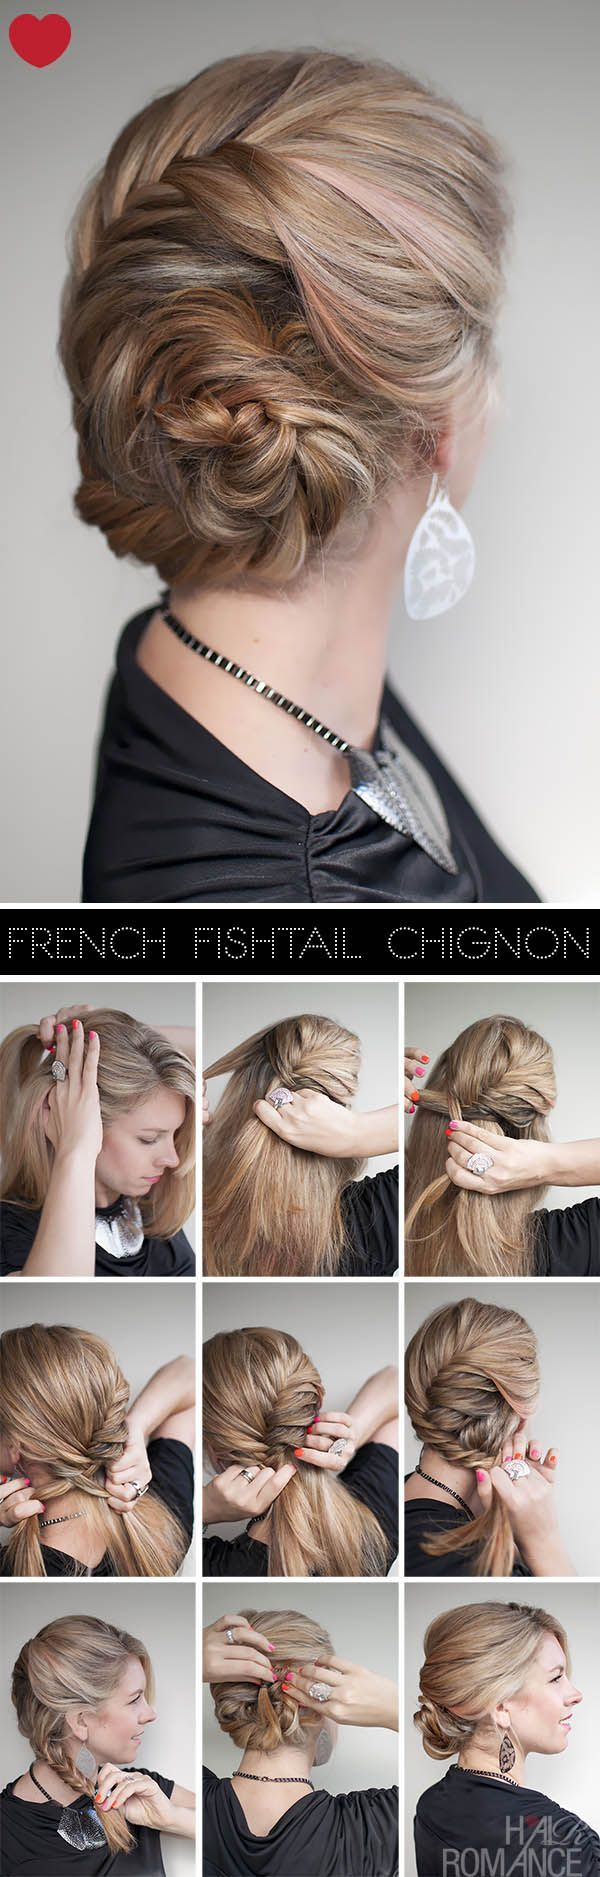 DIY Hair Style French fishtail chignon - someday I'll learn how to do my own hair like this.